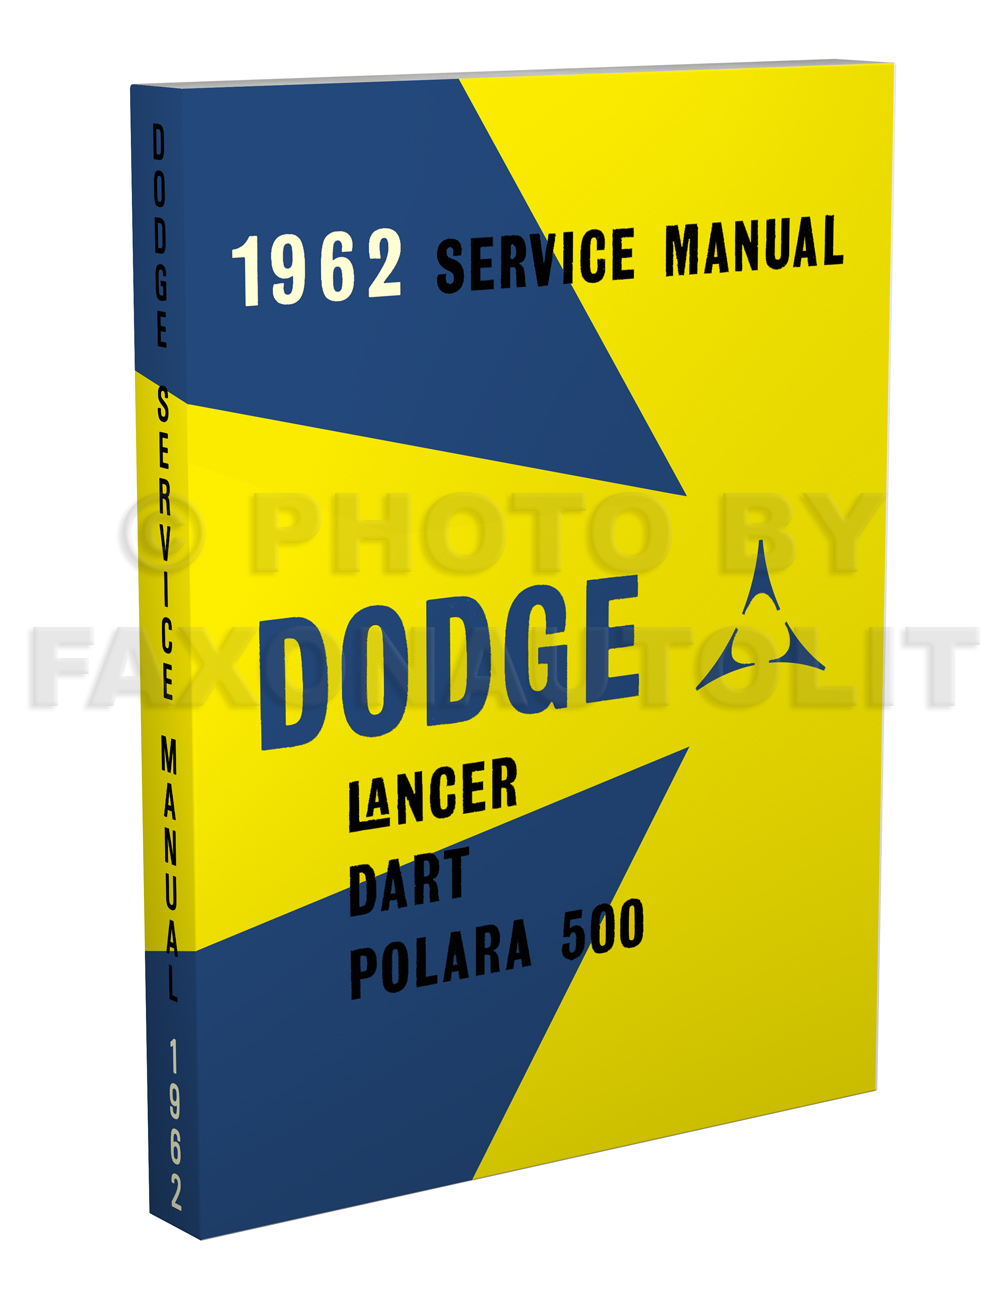 Search 1961 Dodge Seneca Dart Wiring Diagram 1962 Car Shop Manual Reprint Lancer Polara